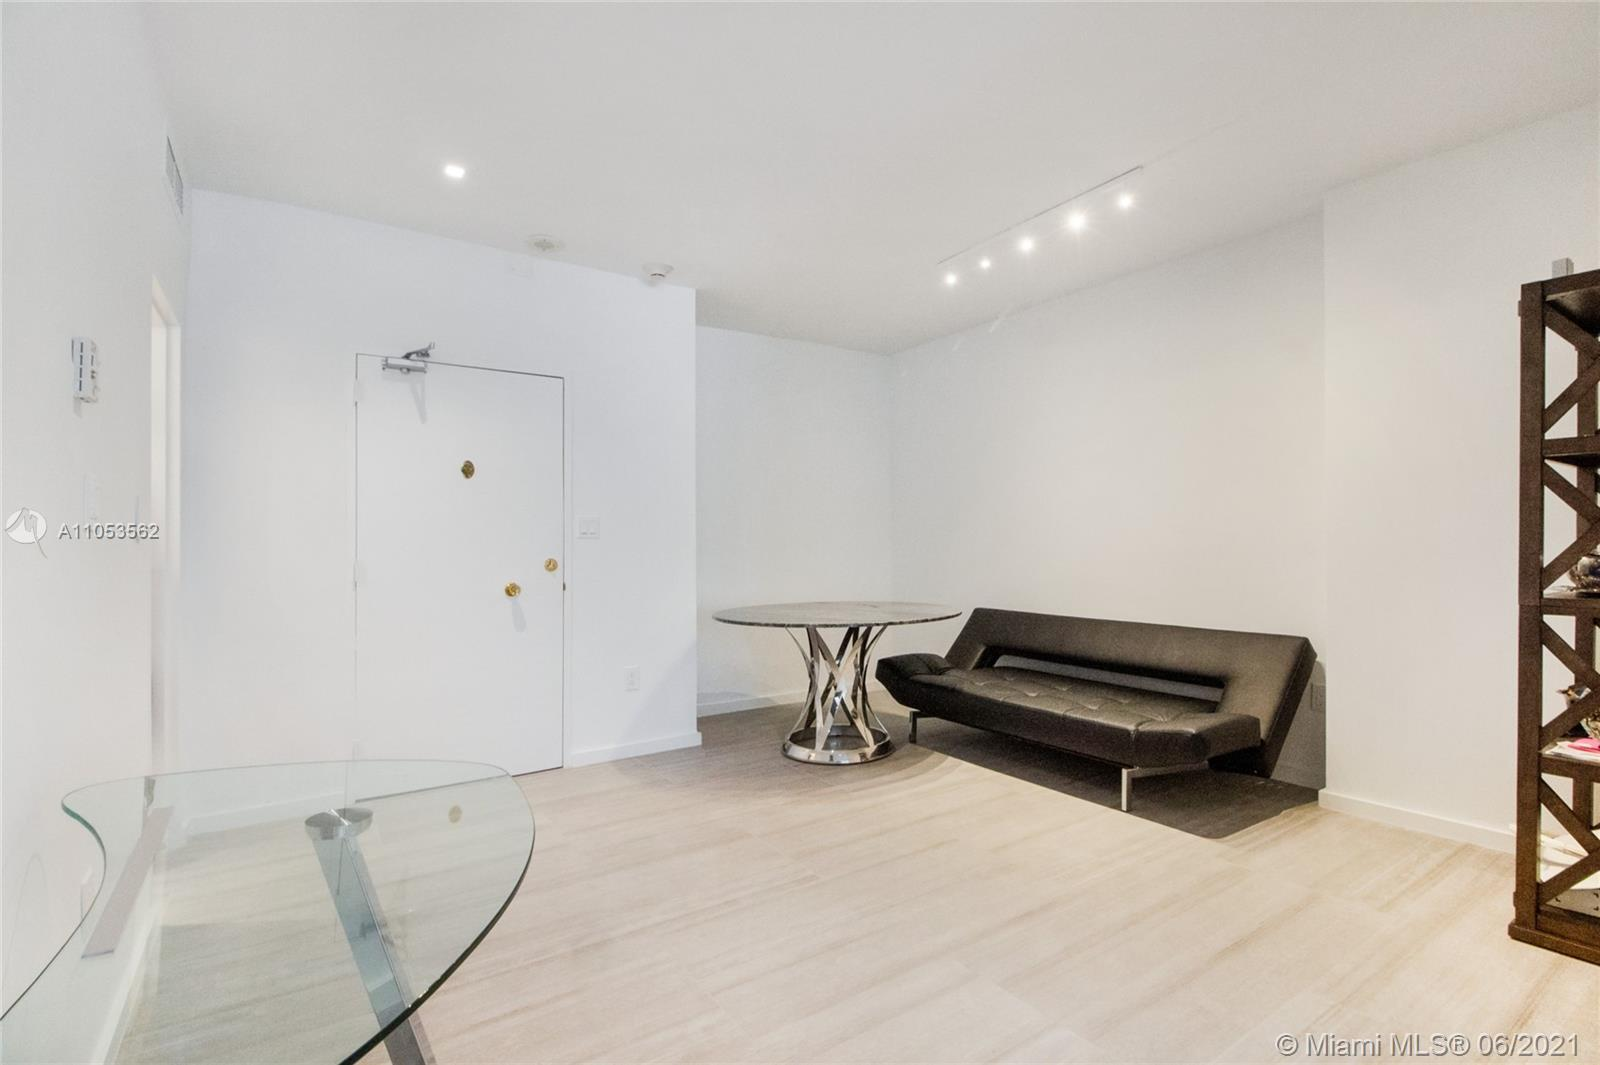 Completely remodeled 2/2 TURN KEY READY TO MOVE IN at Imperial House ! Ocean access. Generouse maste